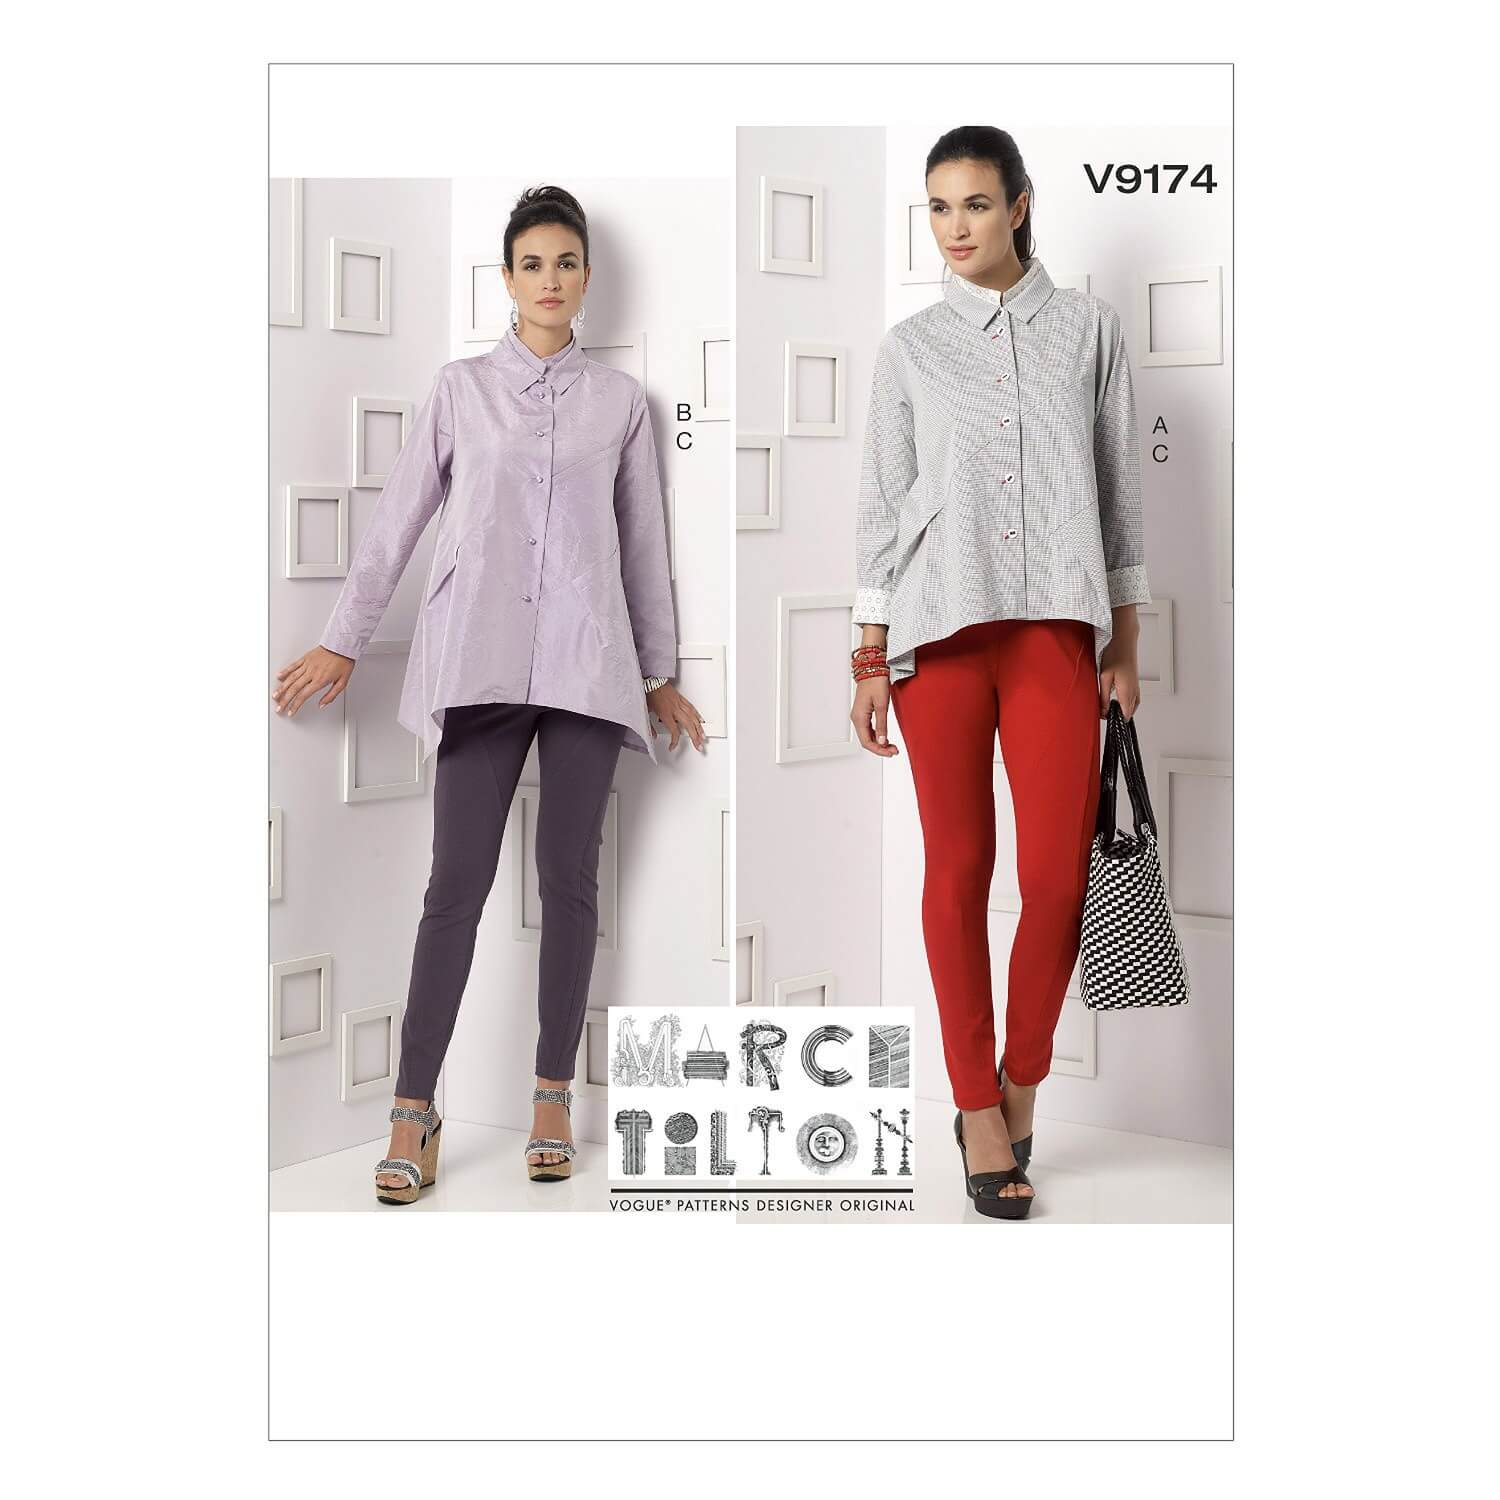 Vogue Sewing Pattern V9174 Women's Double Collared Shirts & Seem Detail Pants